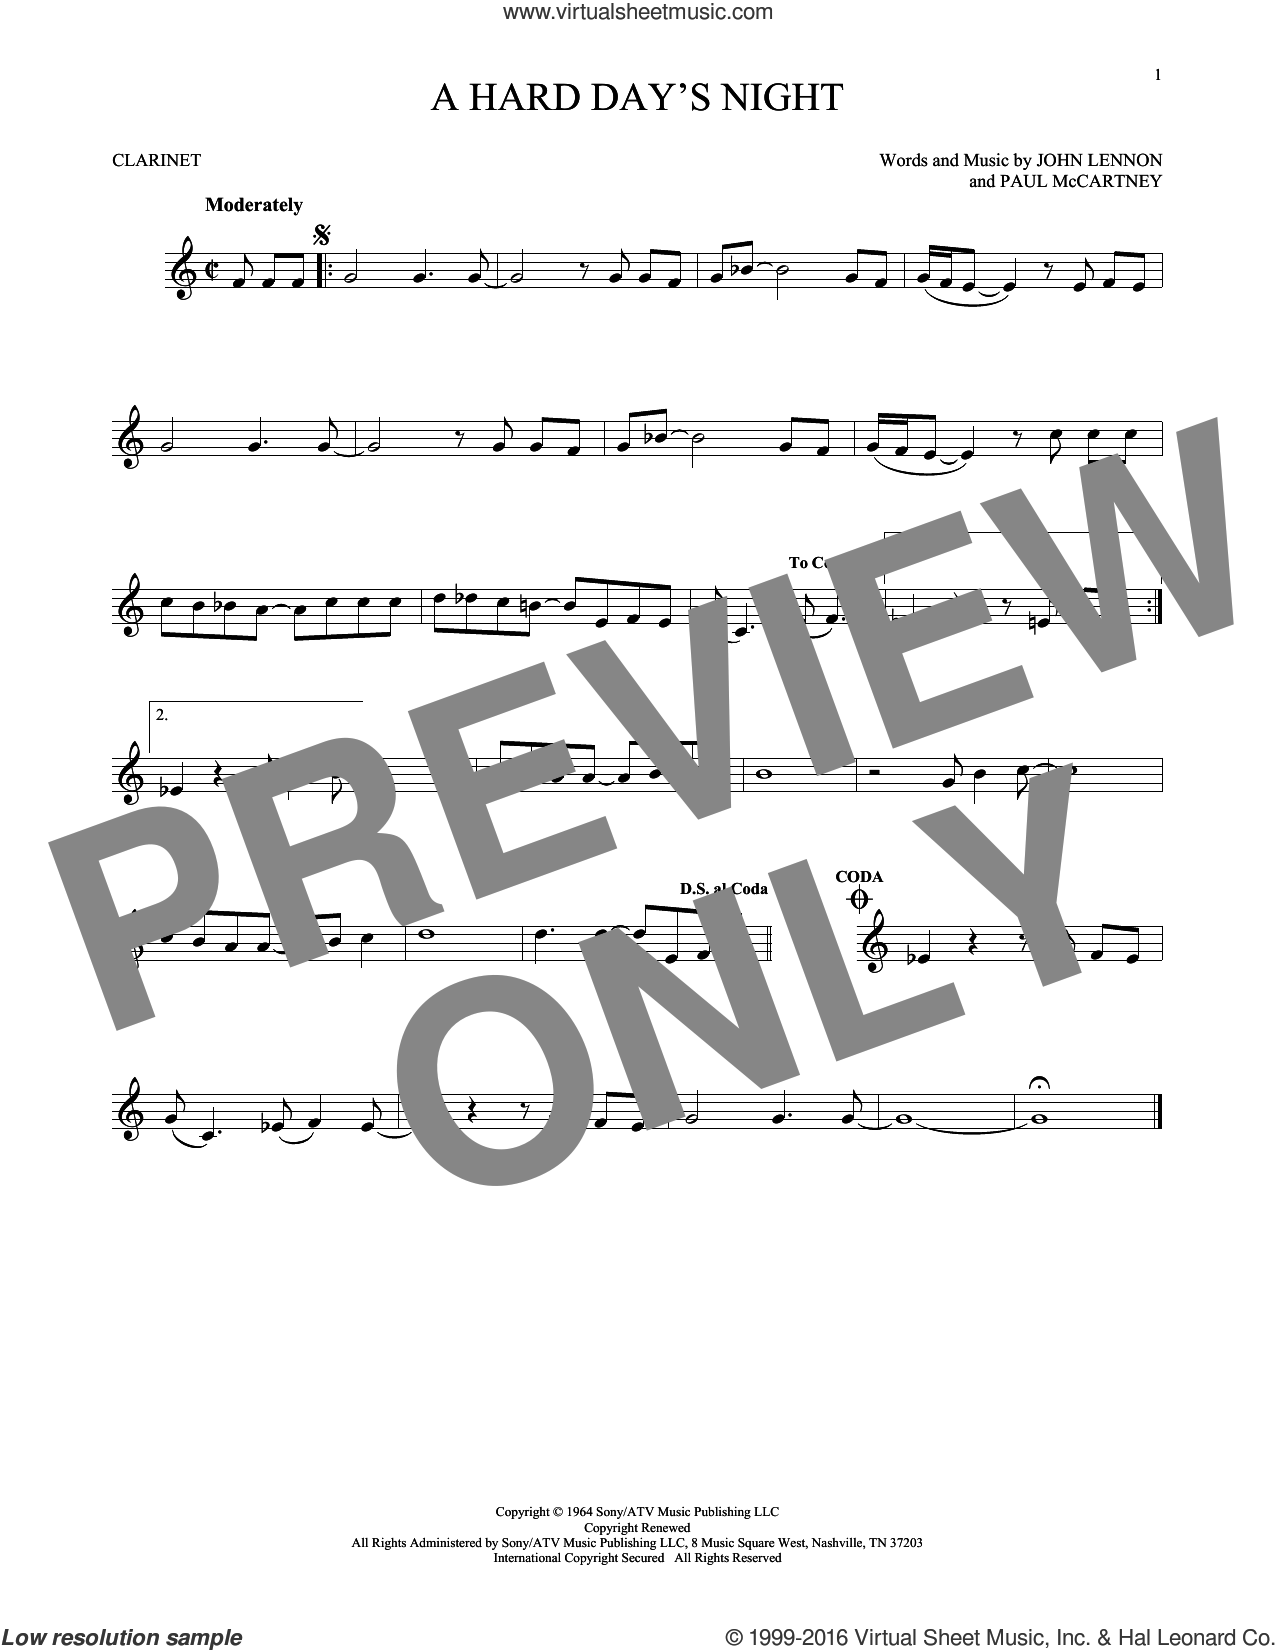 A Hard Day's Night sheet music for clarinet solo by The Beatles, John Lennon and Paul McCartney, intermediate skill level